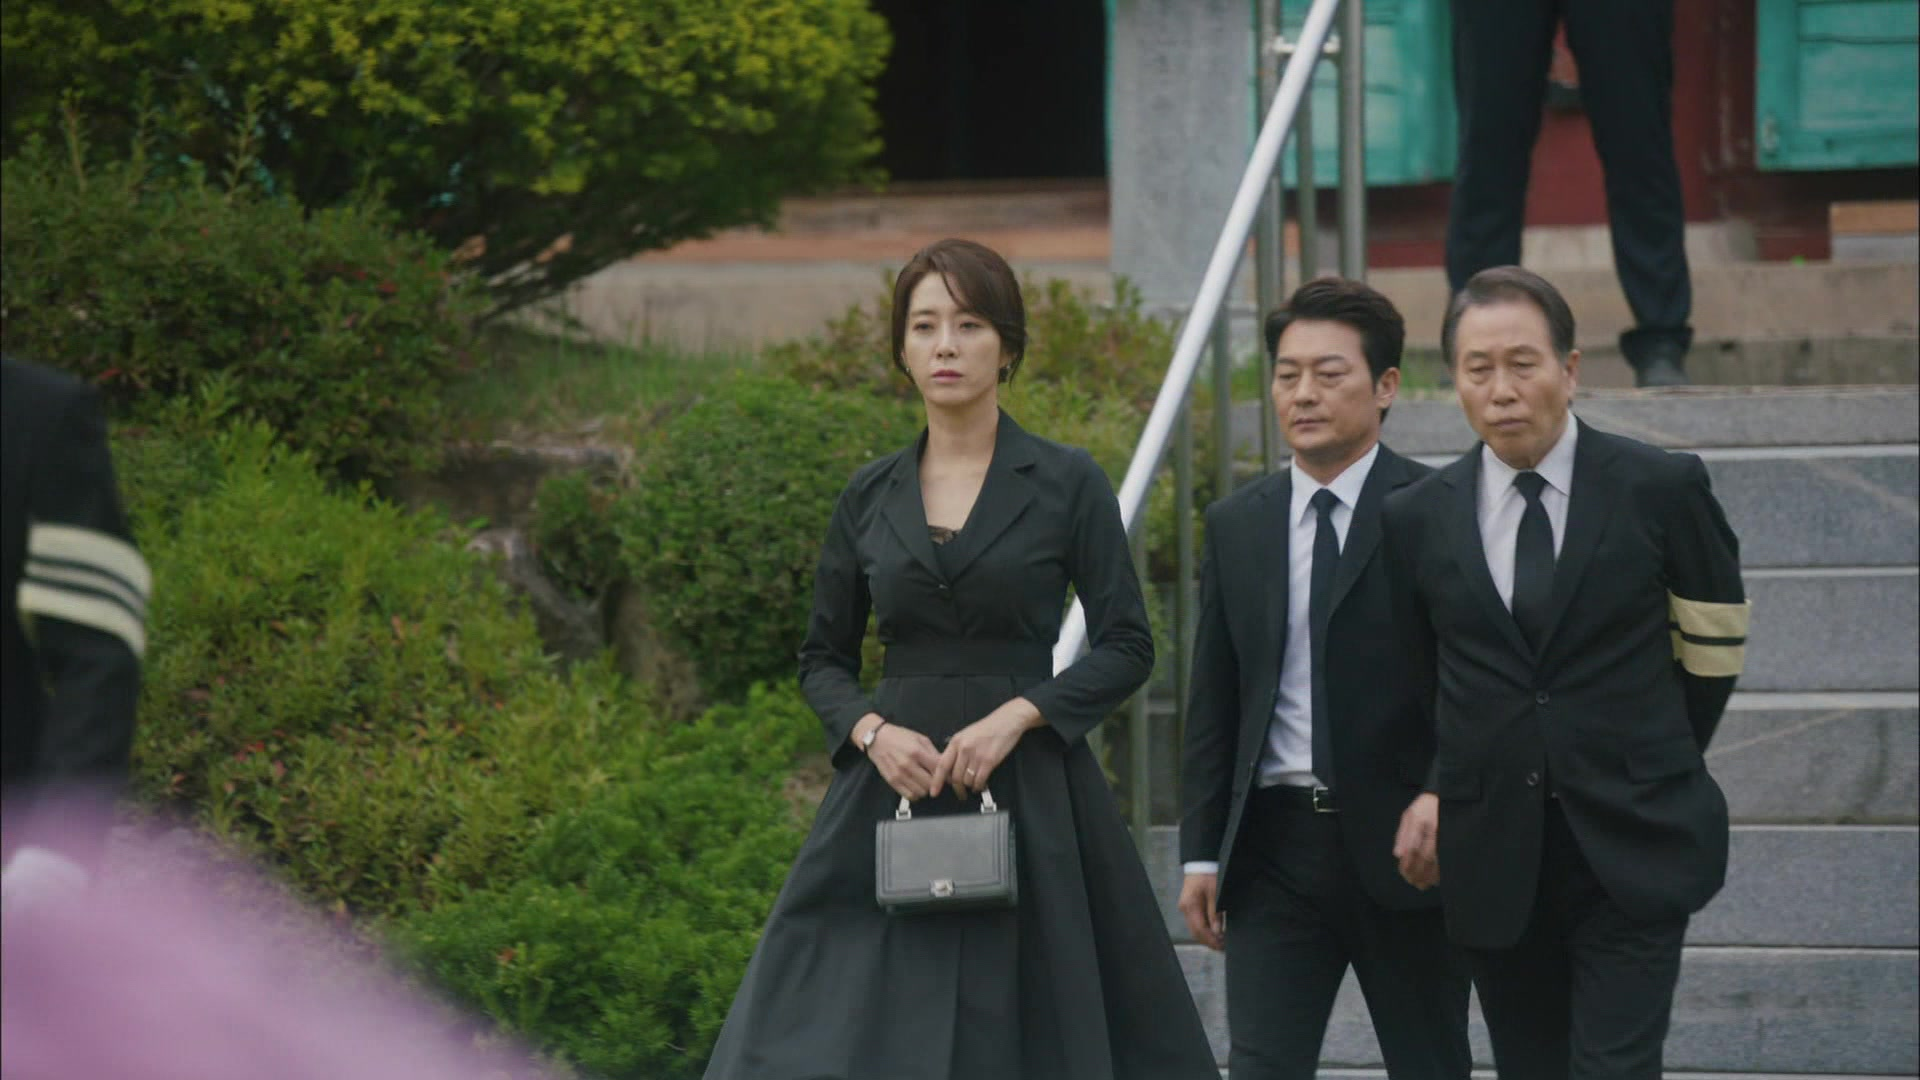 The K2 Episode 5